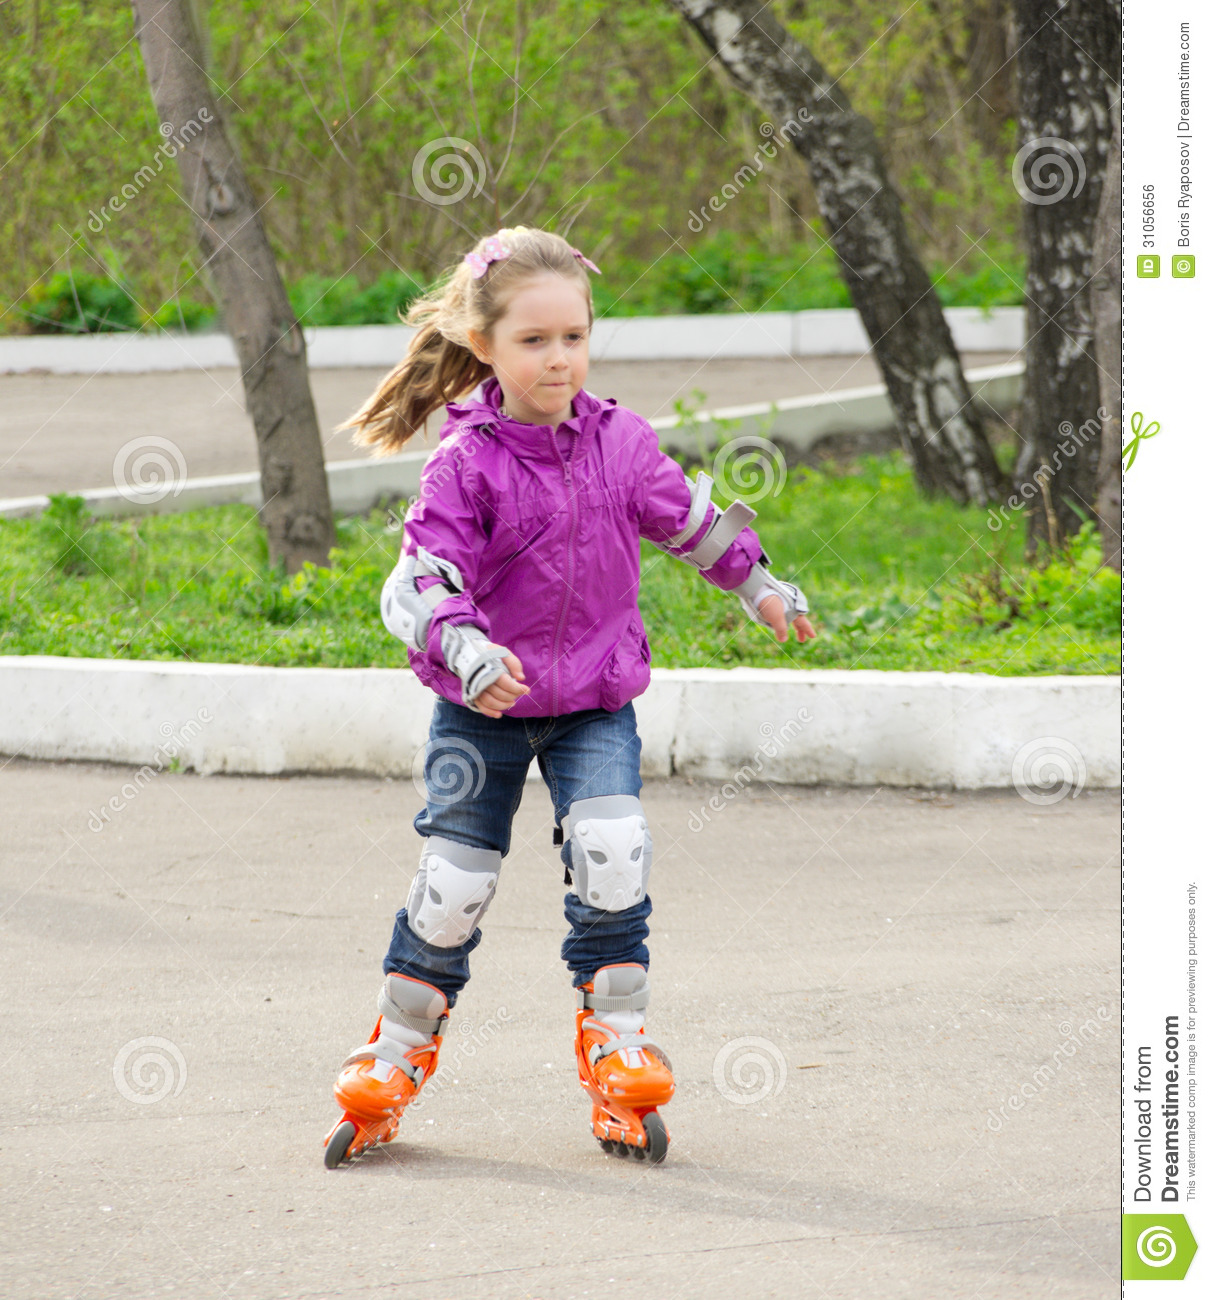 little girl roller skating stock photo image of outdoors